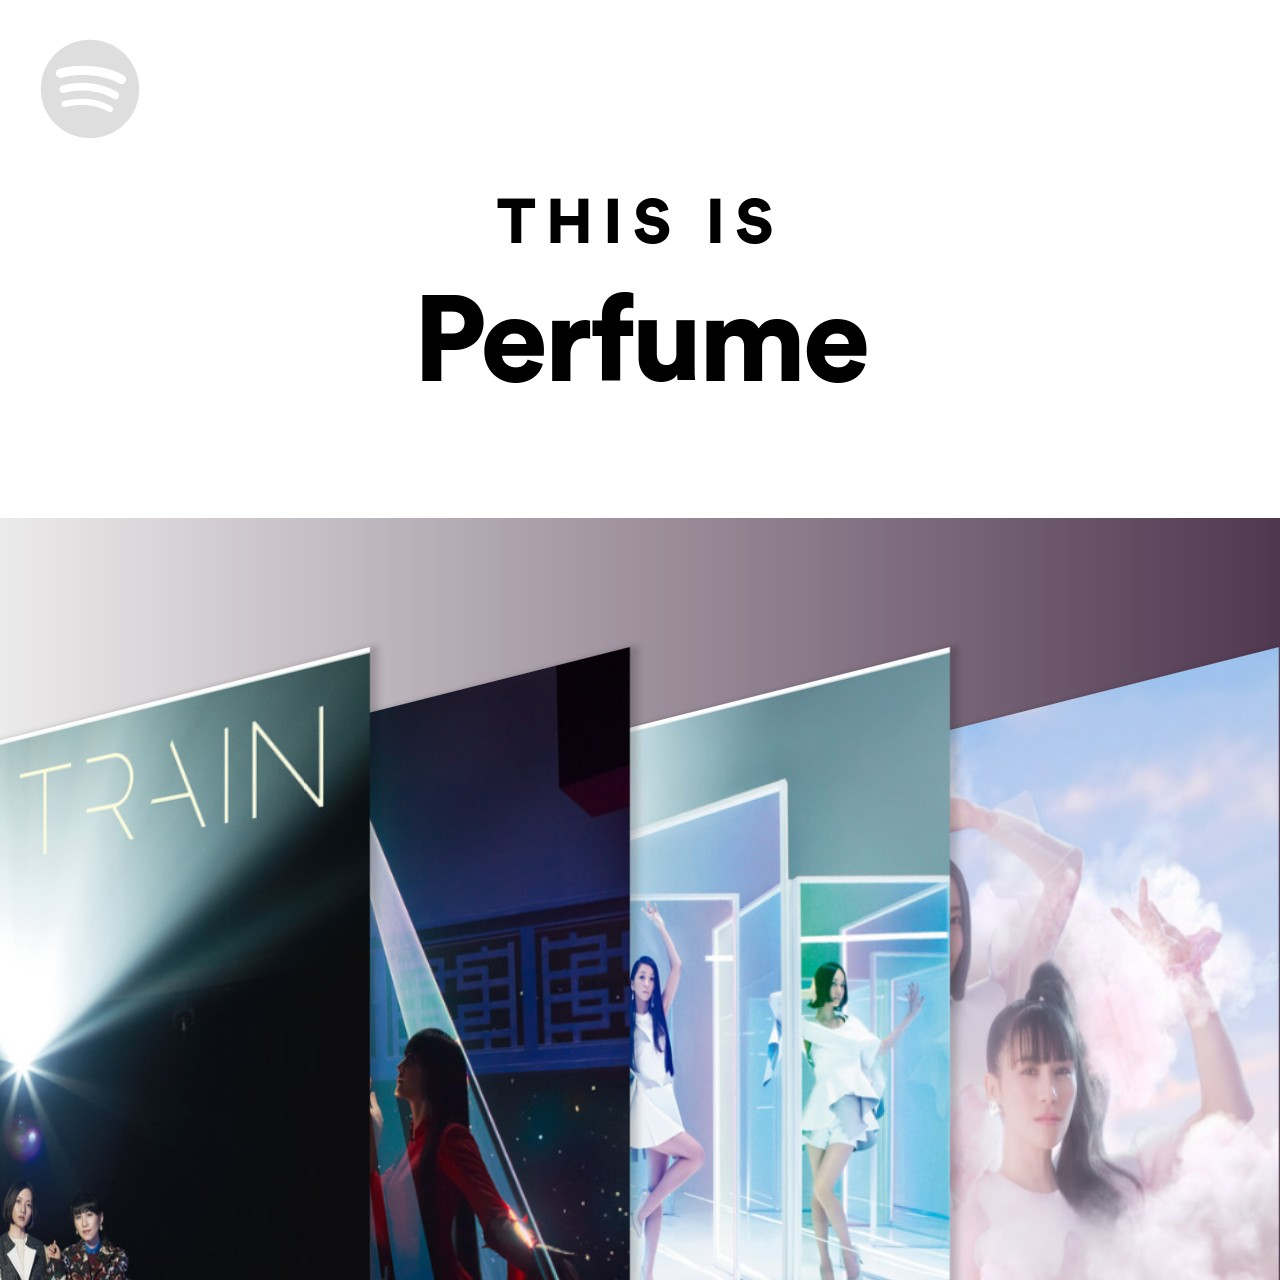 This Is Perfume